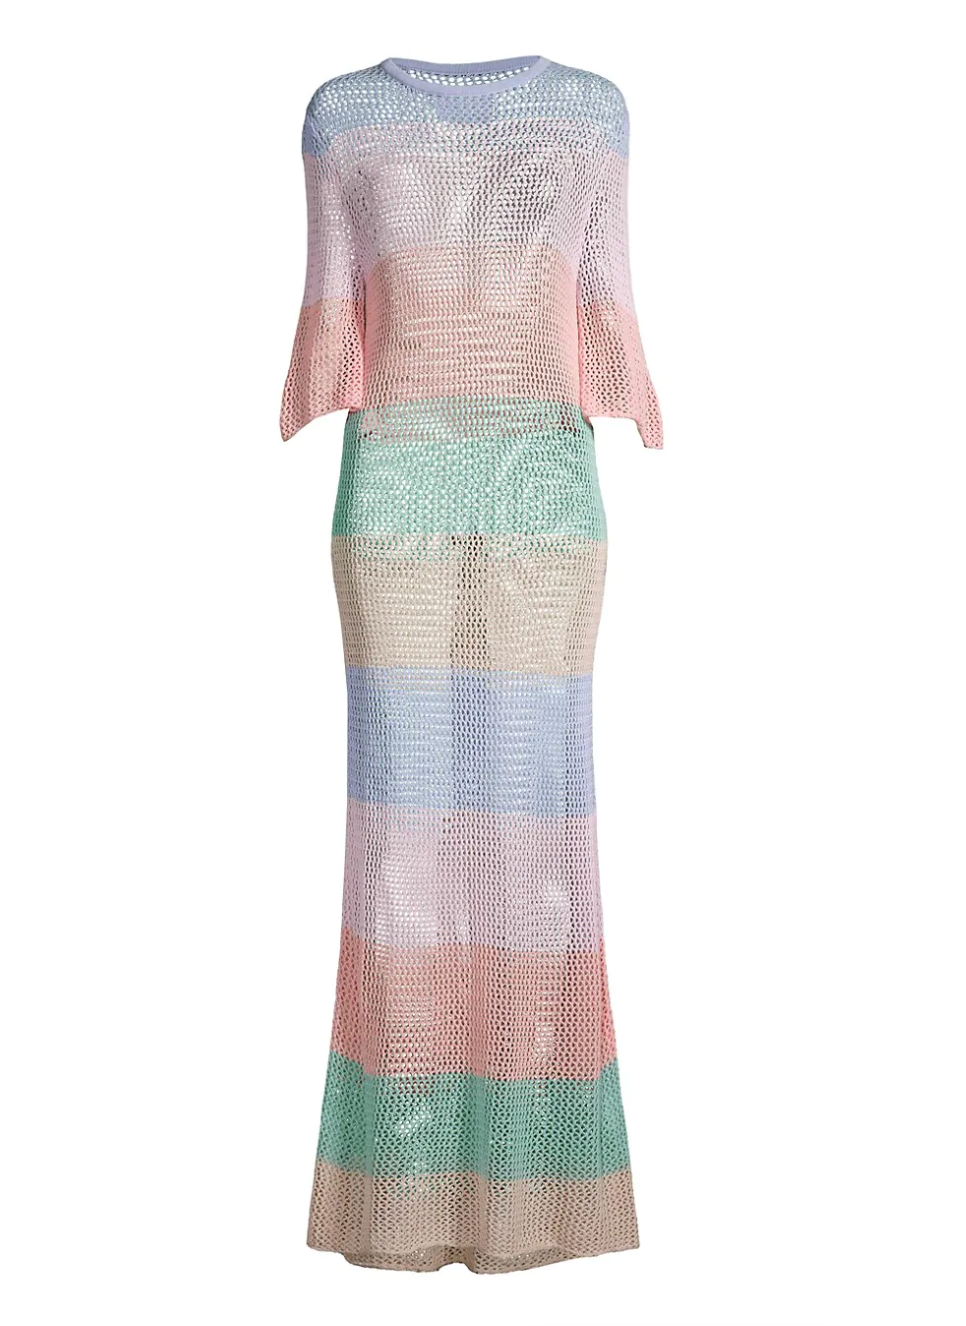 Pitusa Rainbow Crochet Maxi Dress - Pastels